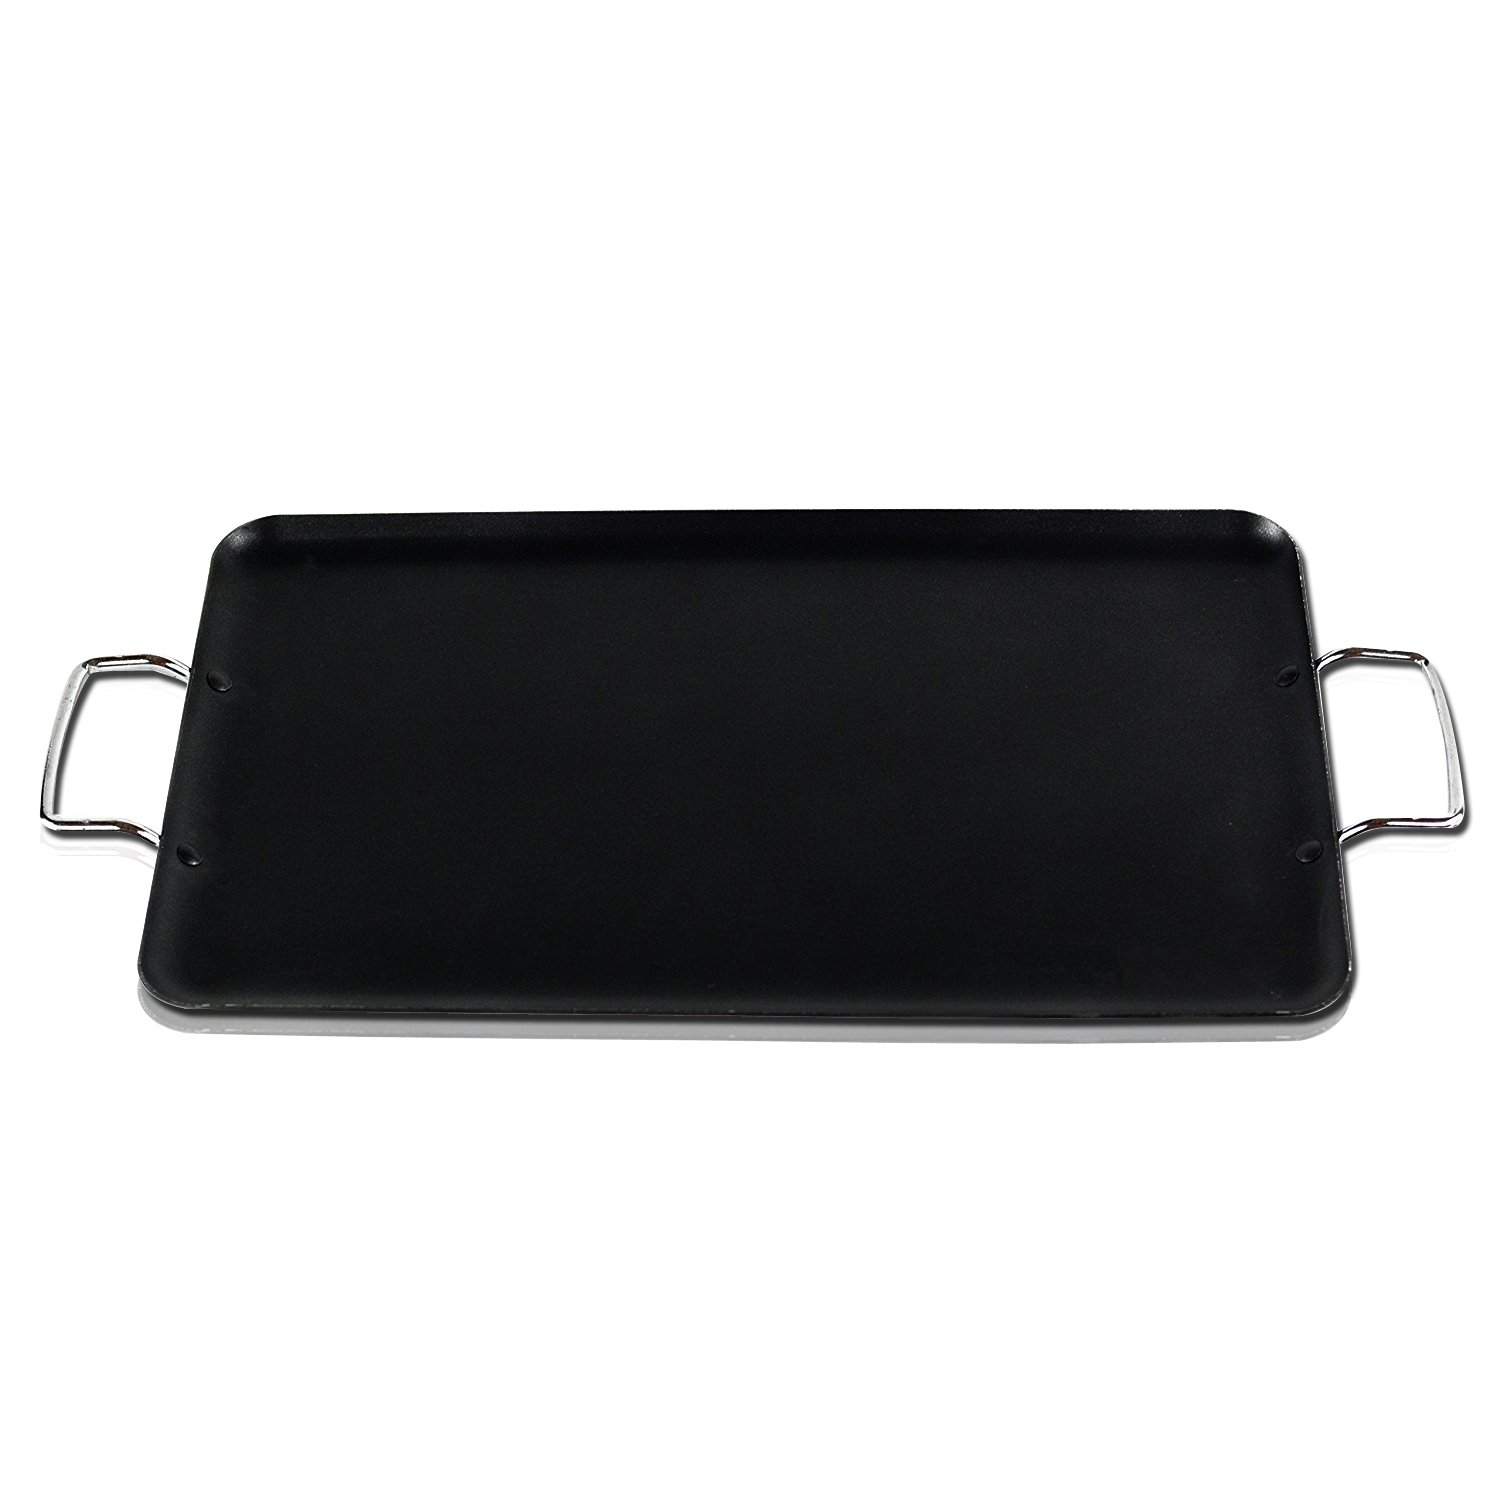 Gourmet Chef JL-148 Non-Stick Griddle Pan, 19-Inch by Gourmet Chef [並行輸入品]   B00LJN4HT2